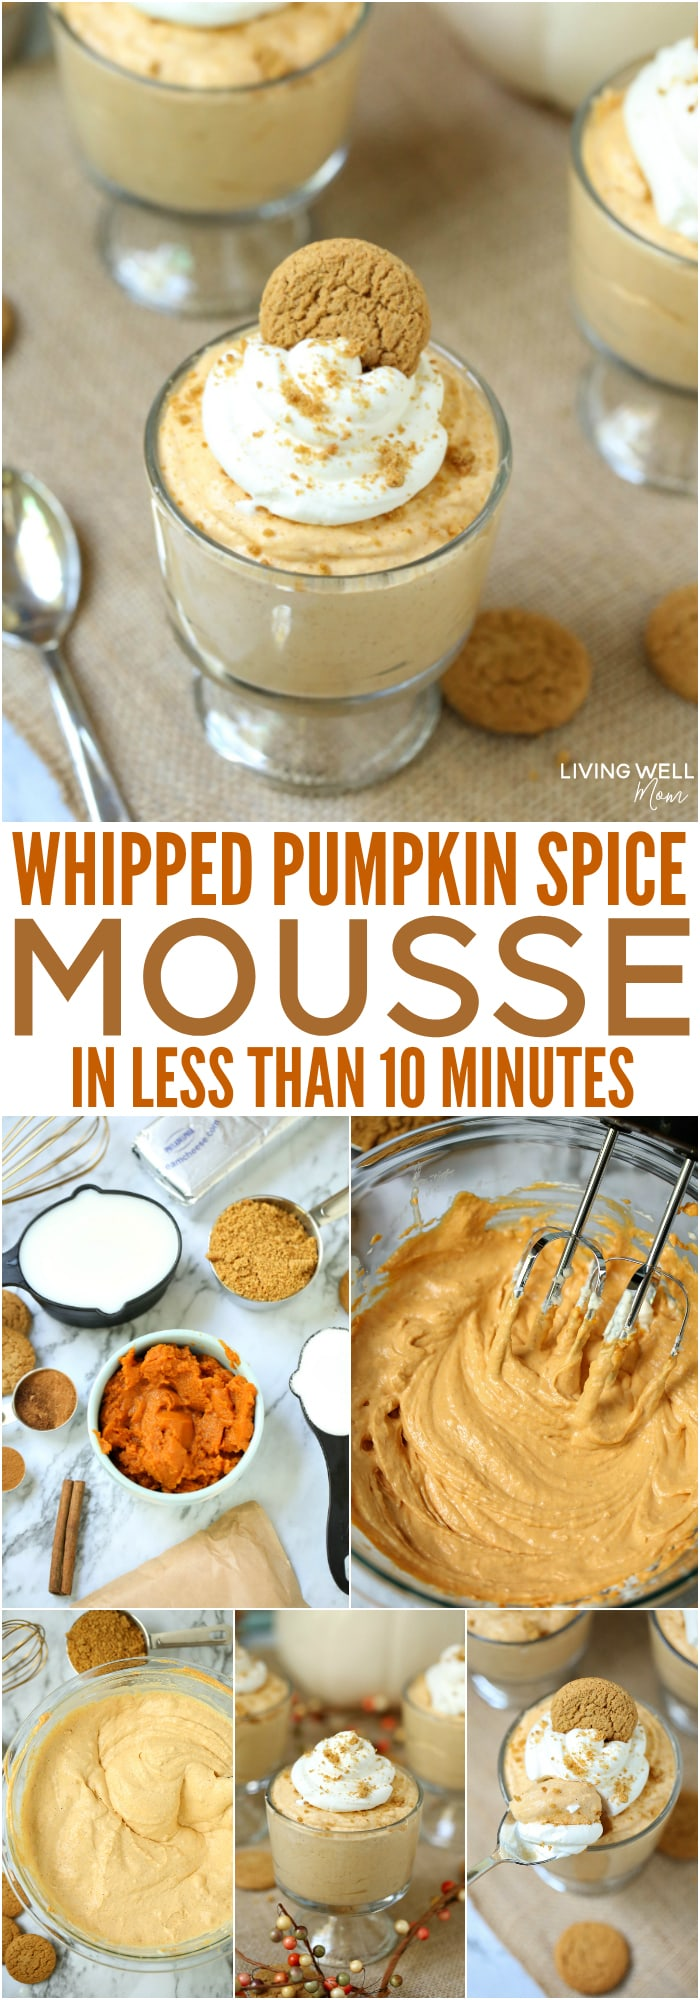 collage of image showing the process of making a whipped pumpkin spice mousse